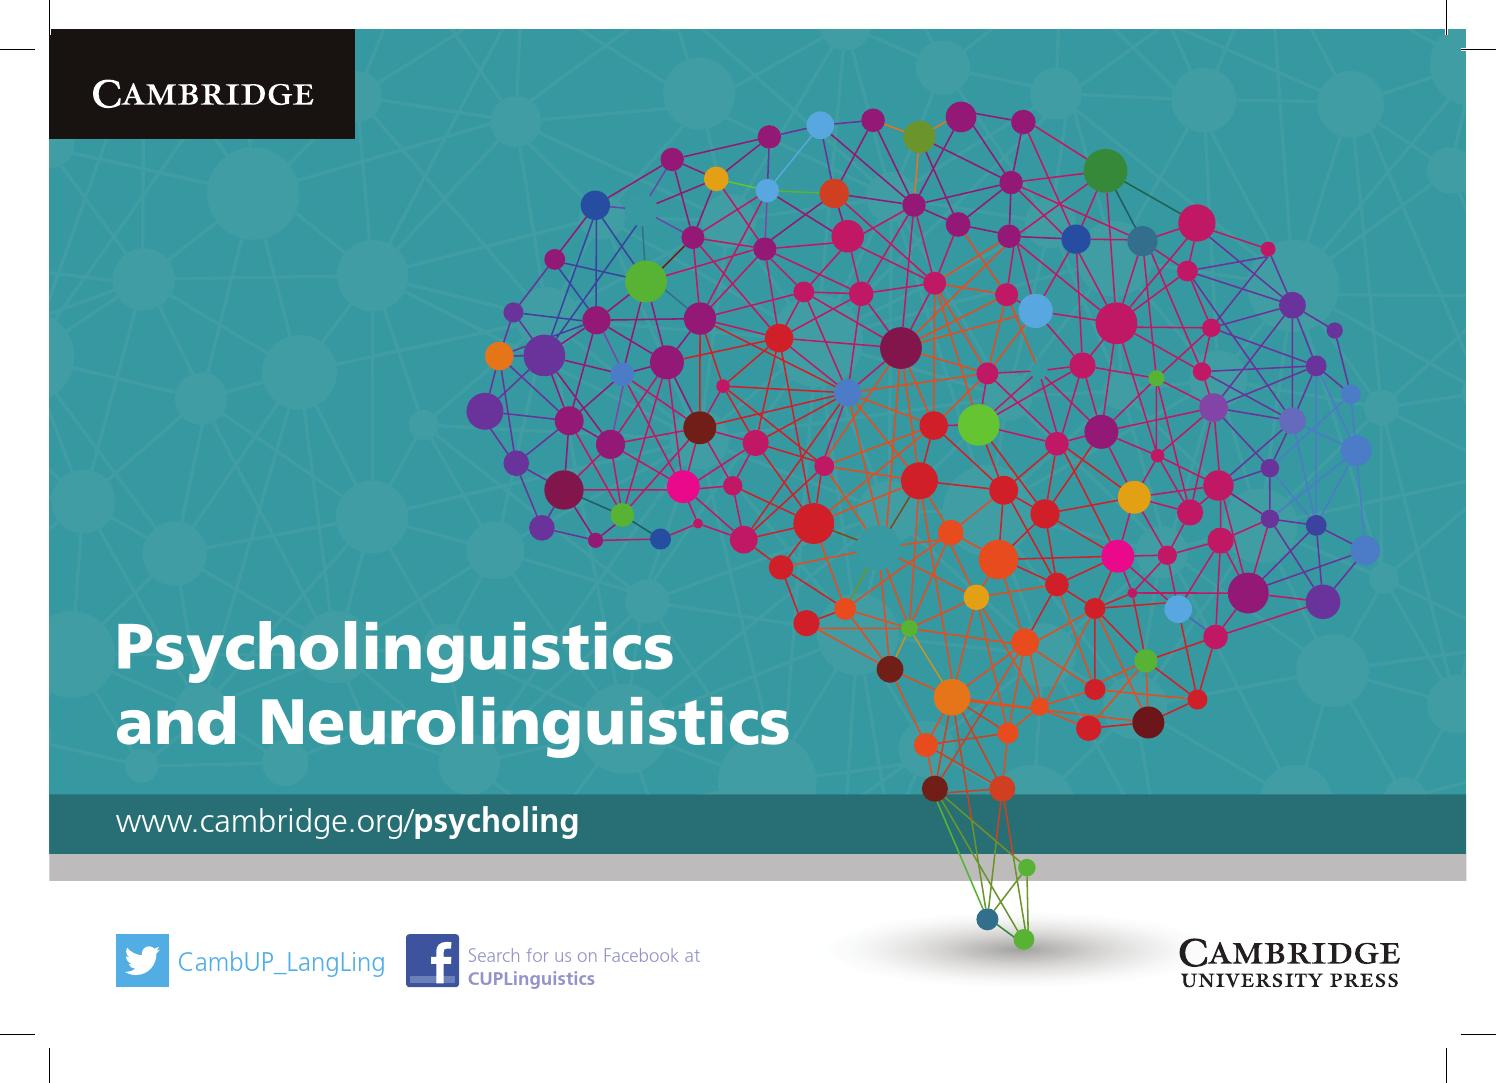 Psycholinguistics and neurolinguistics by cambridge university press psycholinguistics and neurolinguistics by cambridge university press issuu fandeluxe Image collections